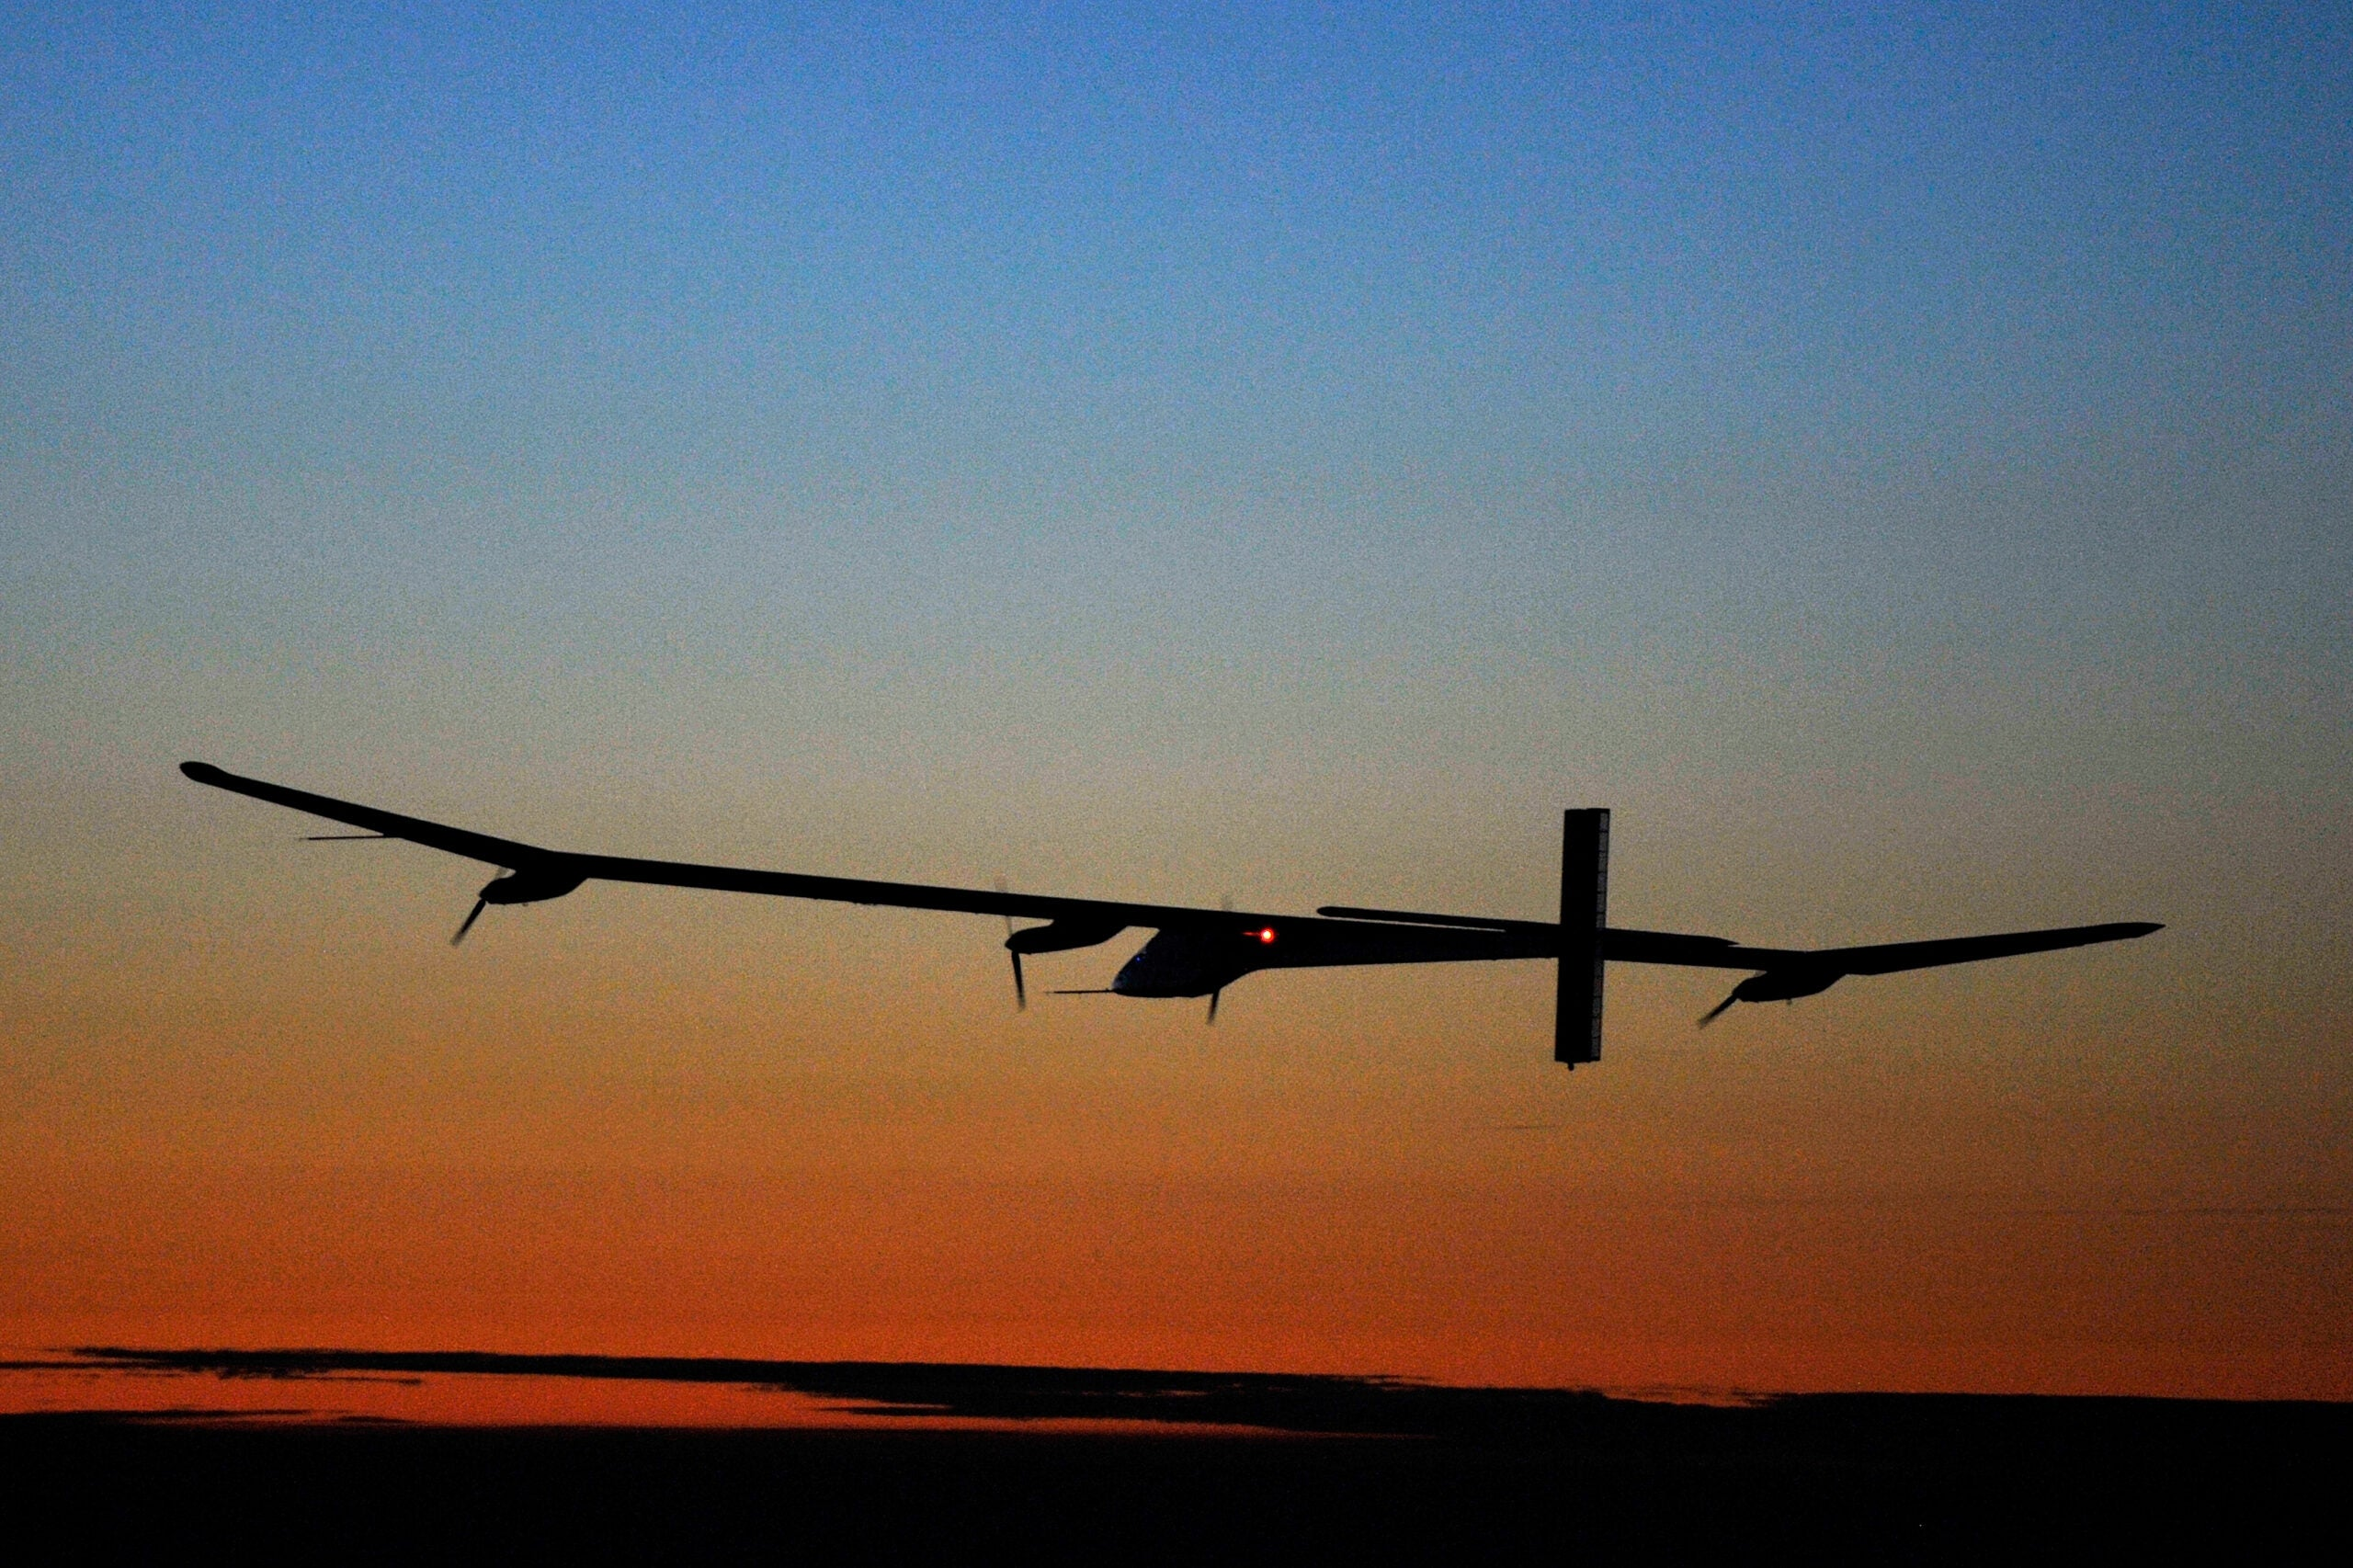 Swiss Solar-Powered Plane Successfully Completes Groundbreaking 26-Hour Night Flight